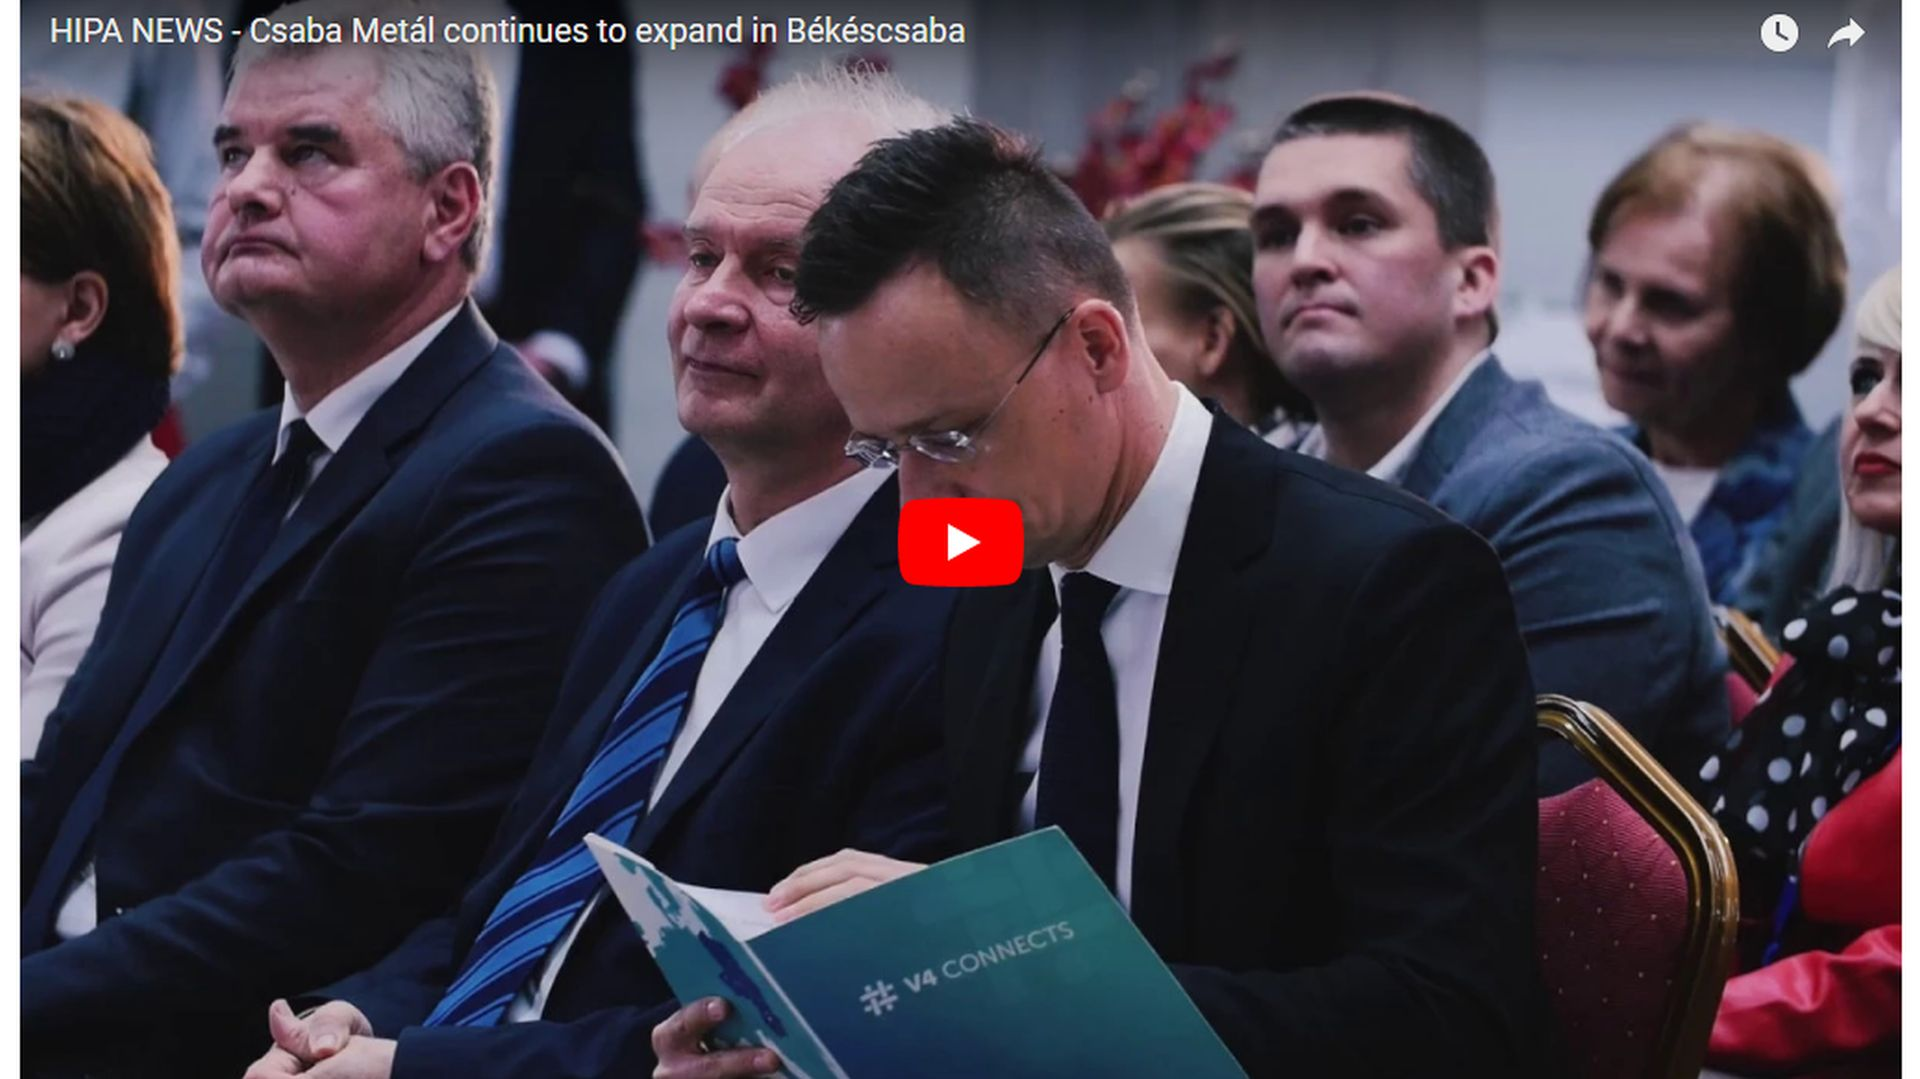 Csaba Metál has developed into an important European automotive supplier - VIDEO REPORT